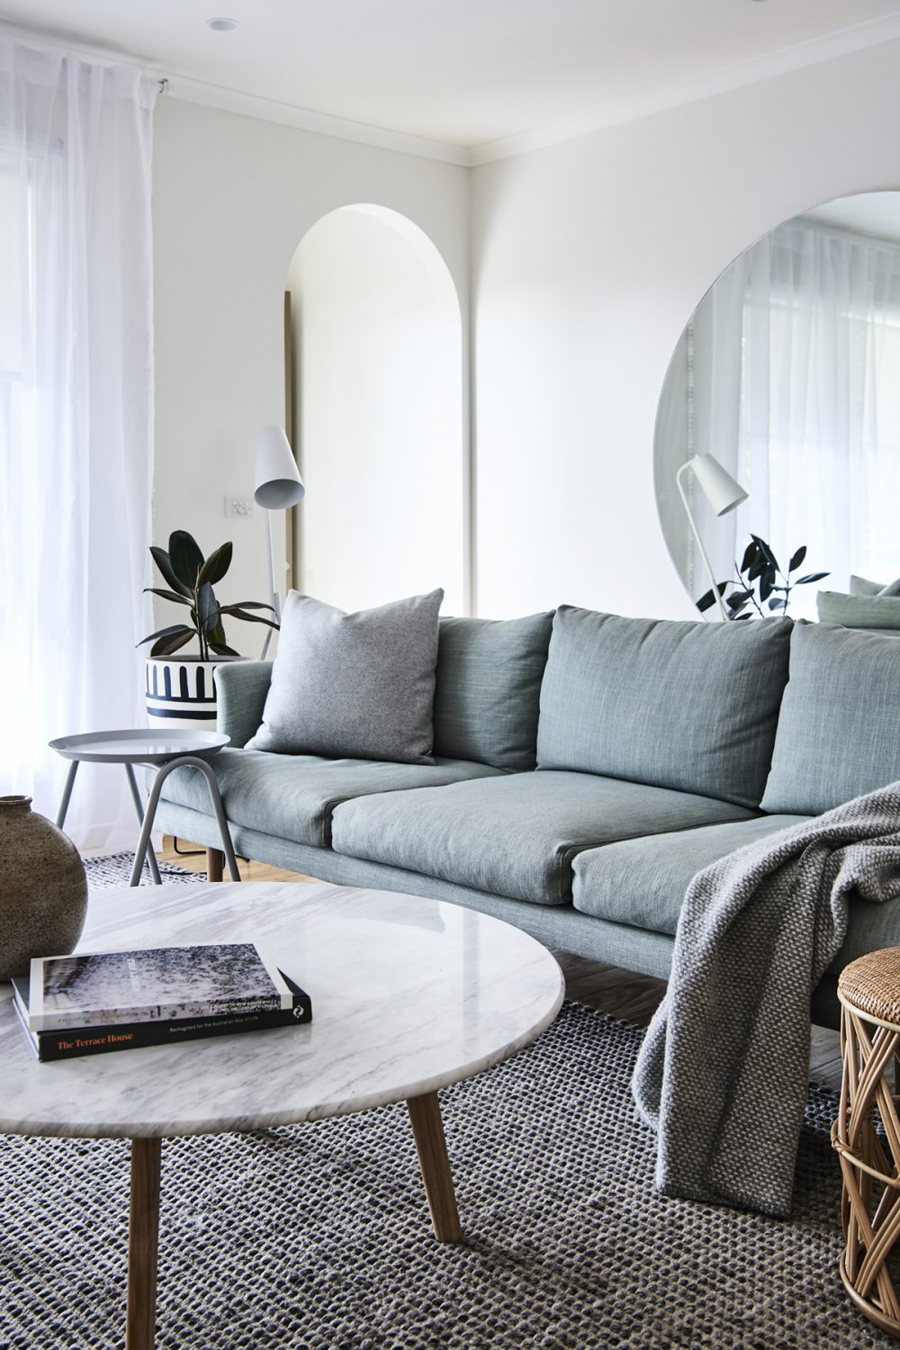 White Marble Table With Muted Blue Couch